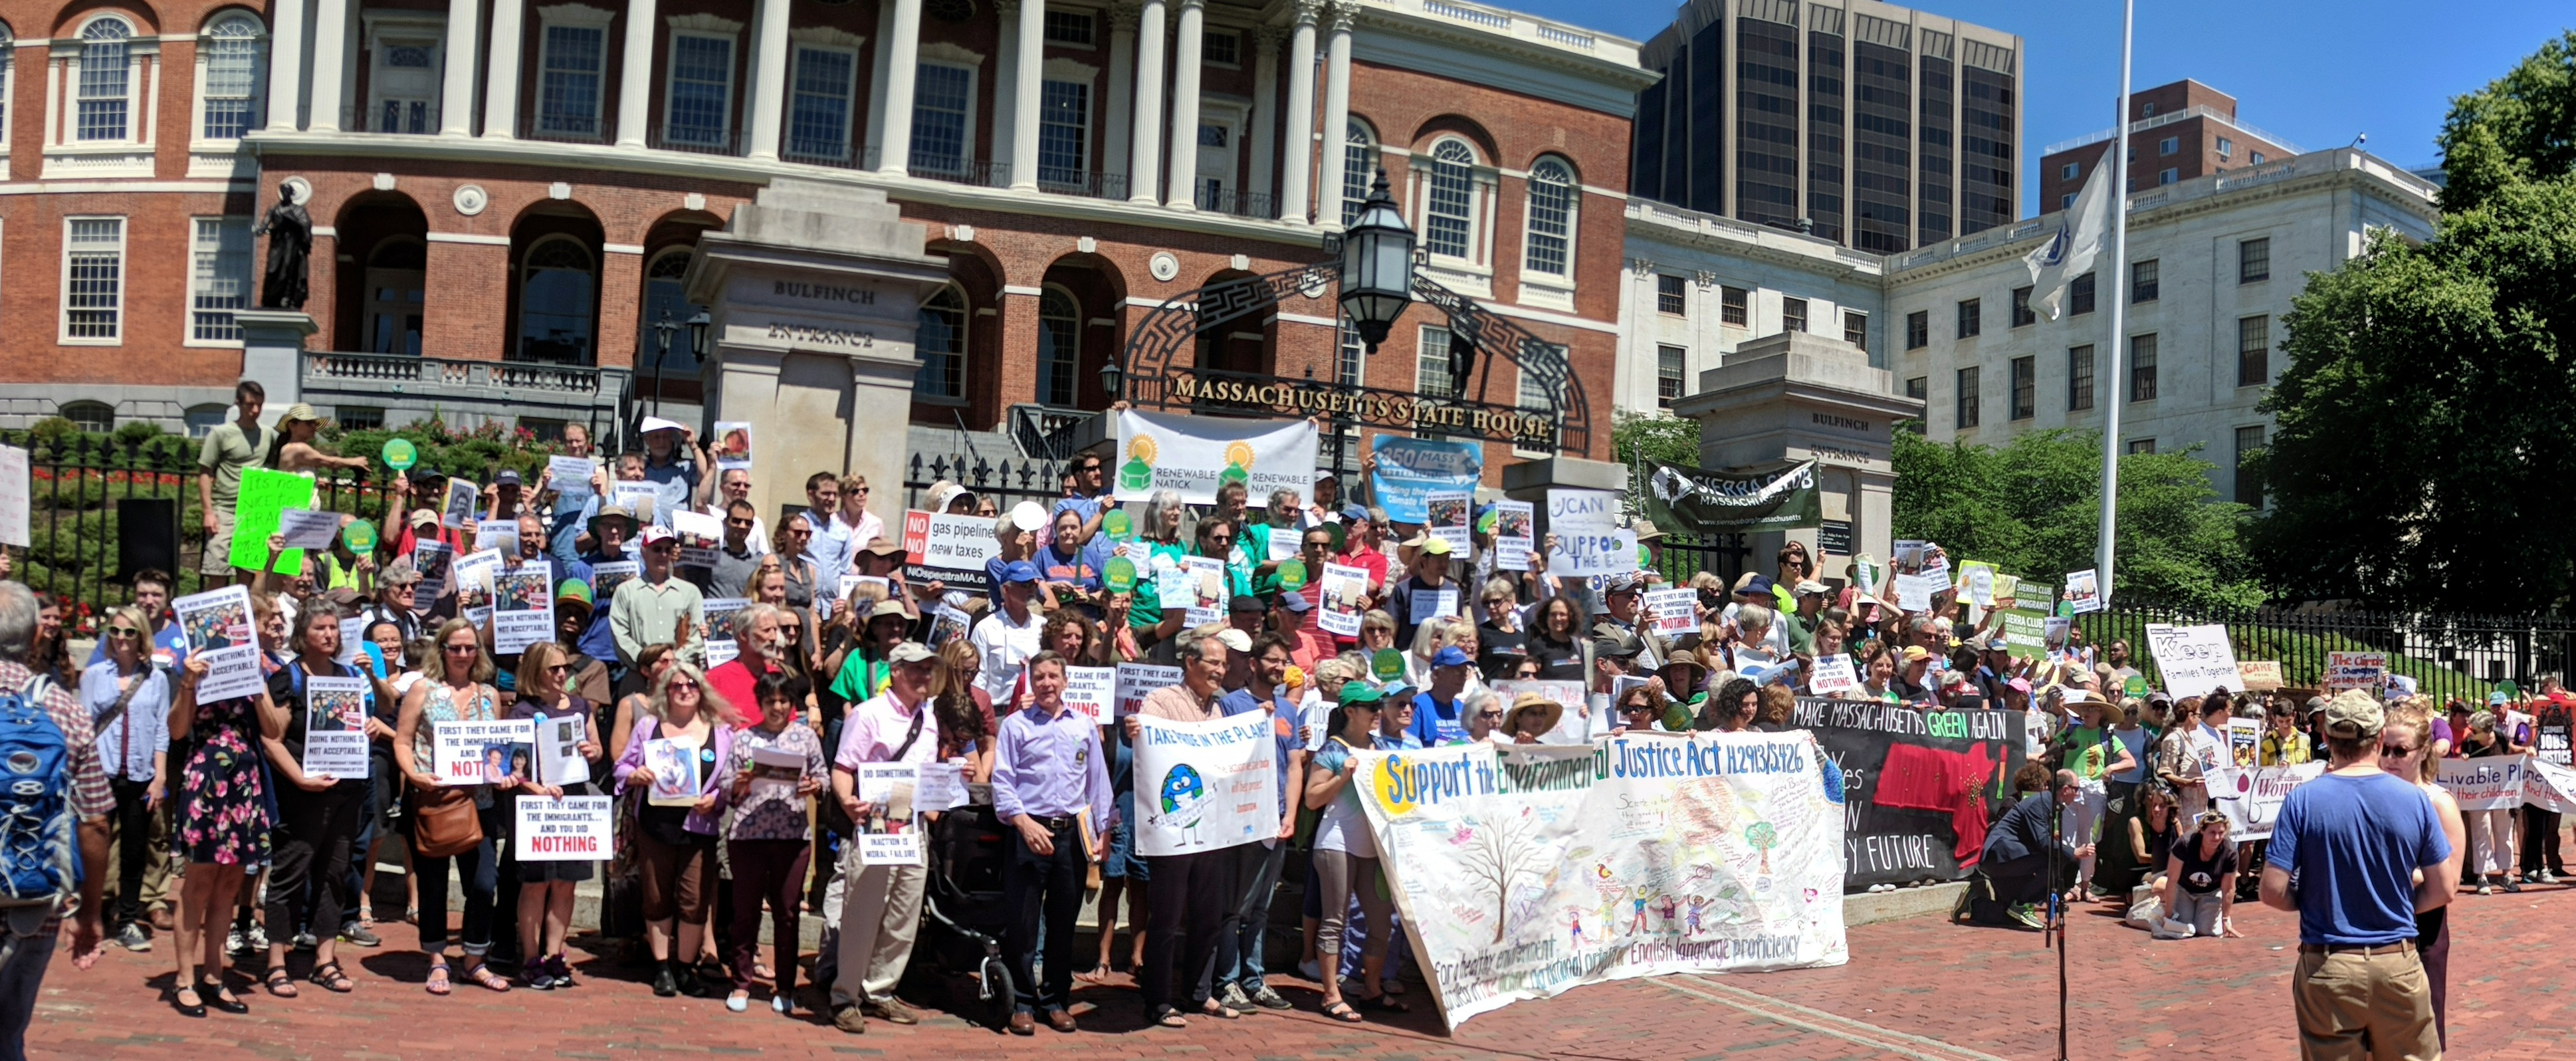 28b131ed7e Supporters rally for clean energy legilation at the MA State House